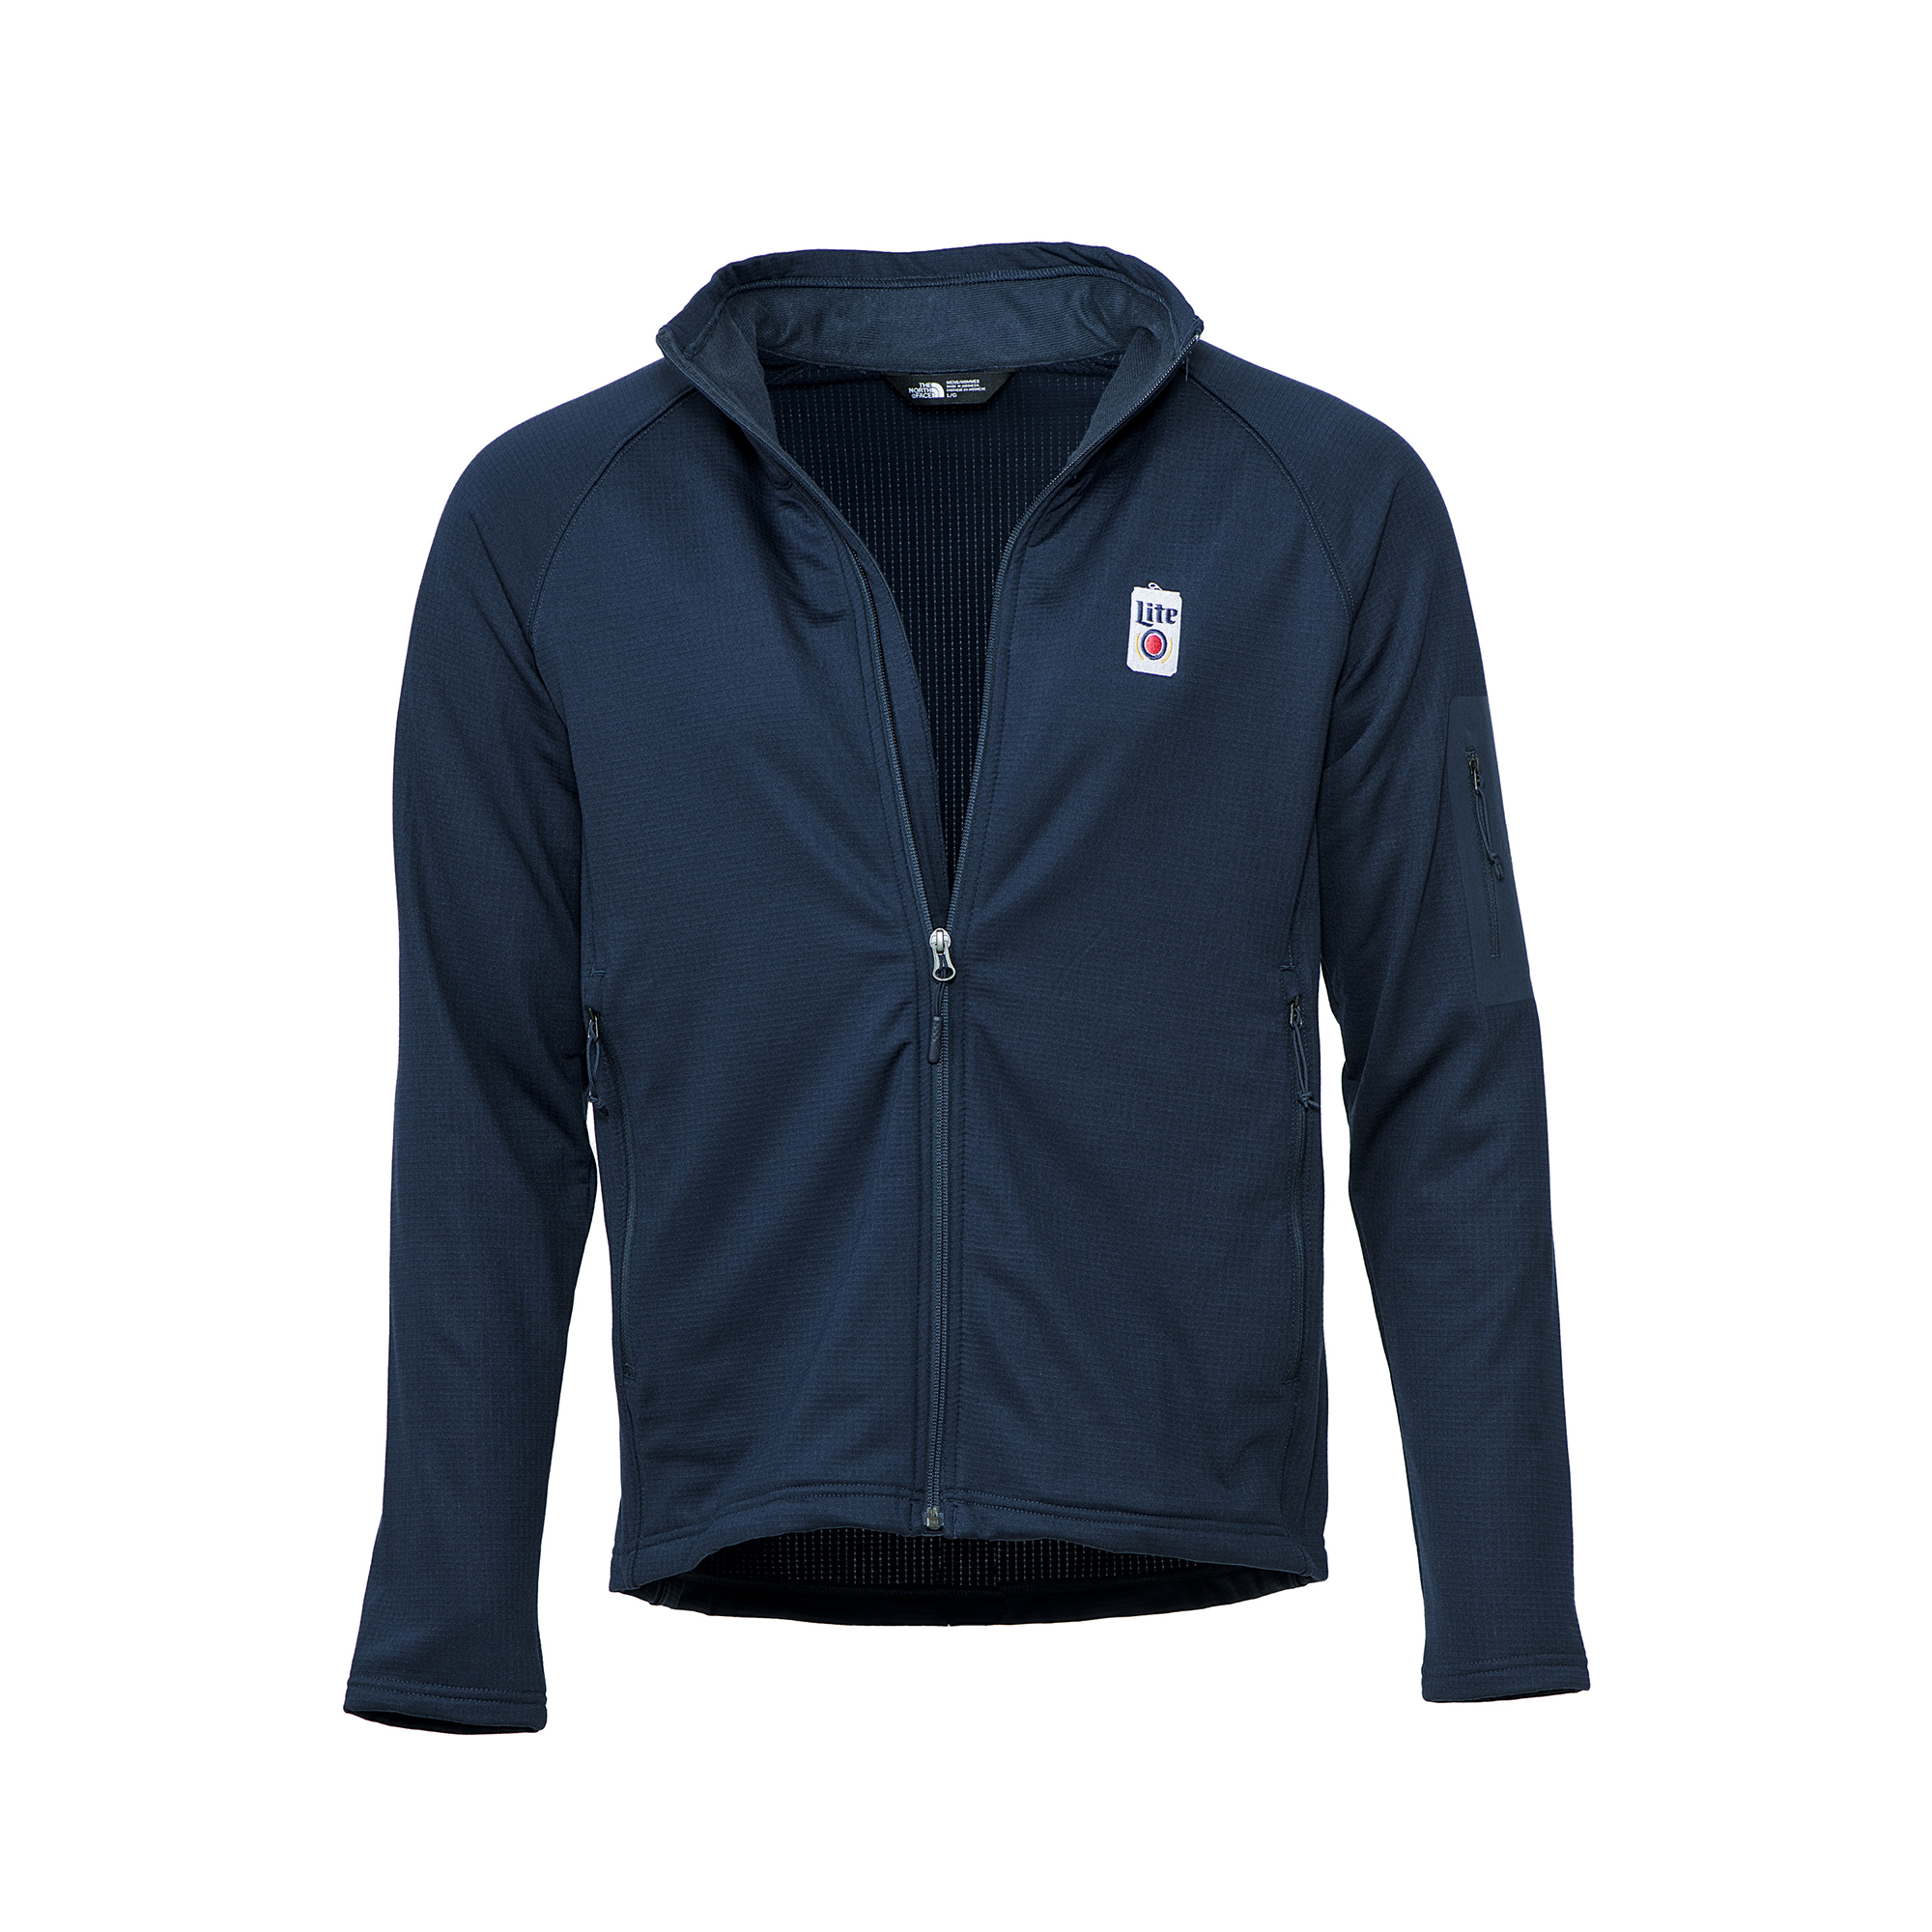 THE NORTH FACE® MILLER LITE JACKET